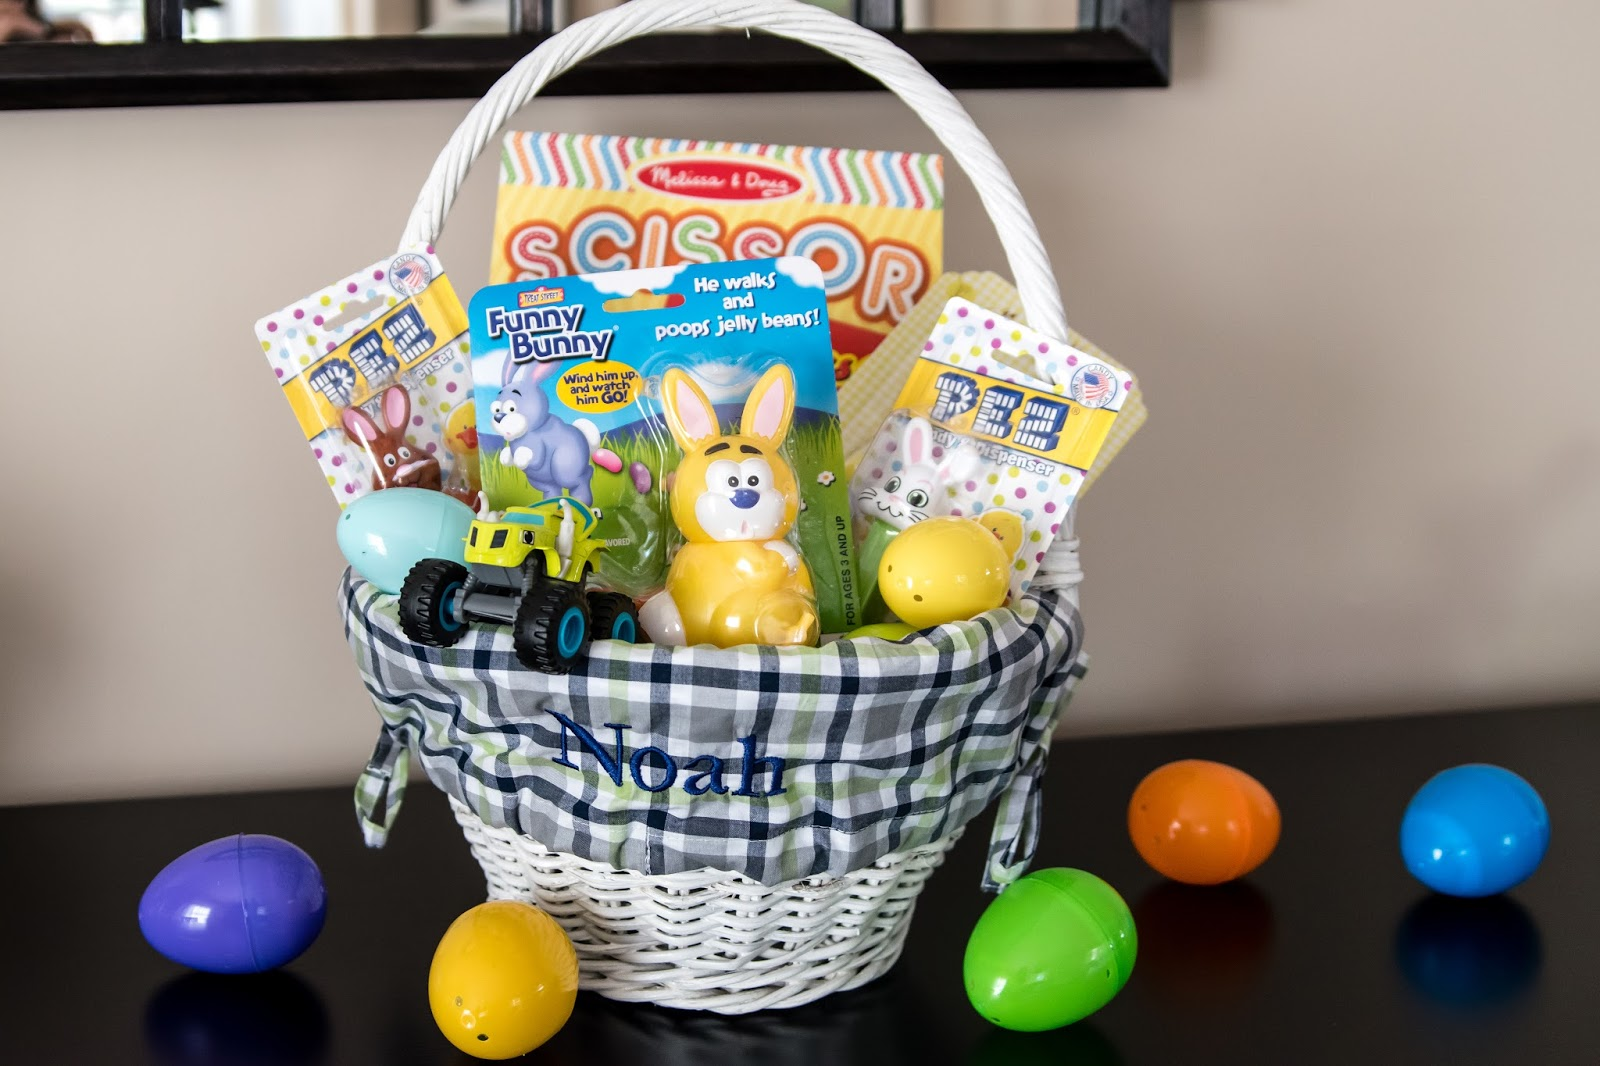 The adventure starts here noahs easter basket easter basket link up while it may seem like a lot most of the gifts are borderline educational that wed get him anyway this way its just in a pretty basket negle Choice Image